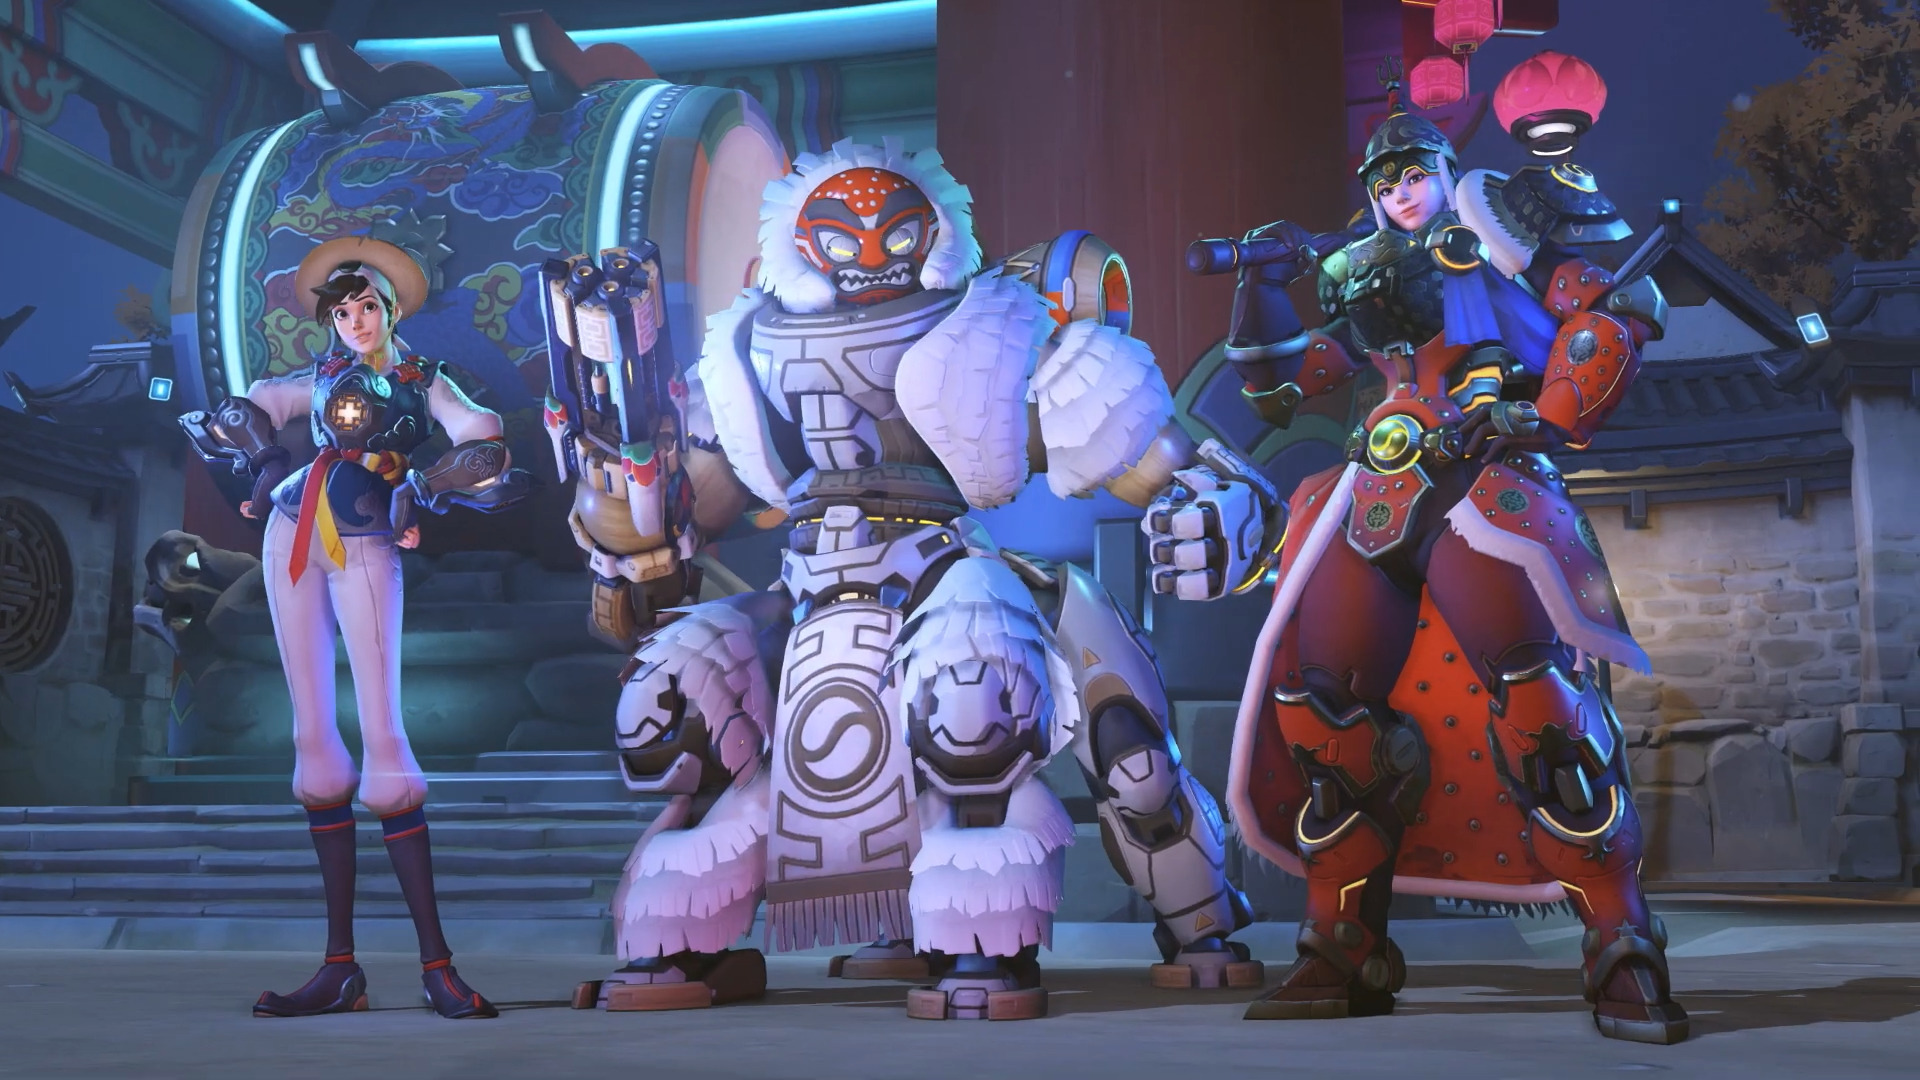 Four more Year of the Pig skins revealed overnight: Orisa, Tracer, Zenyatta, and Brigitte